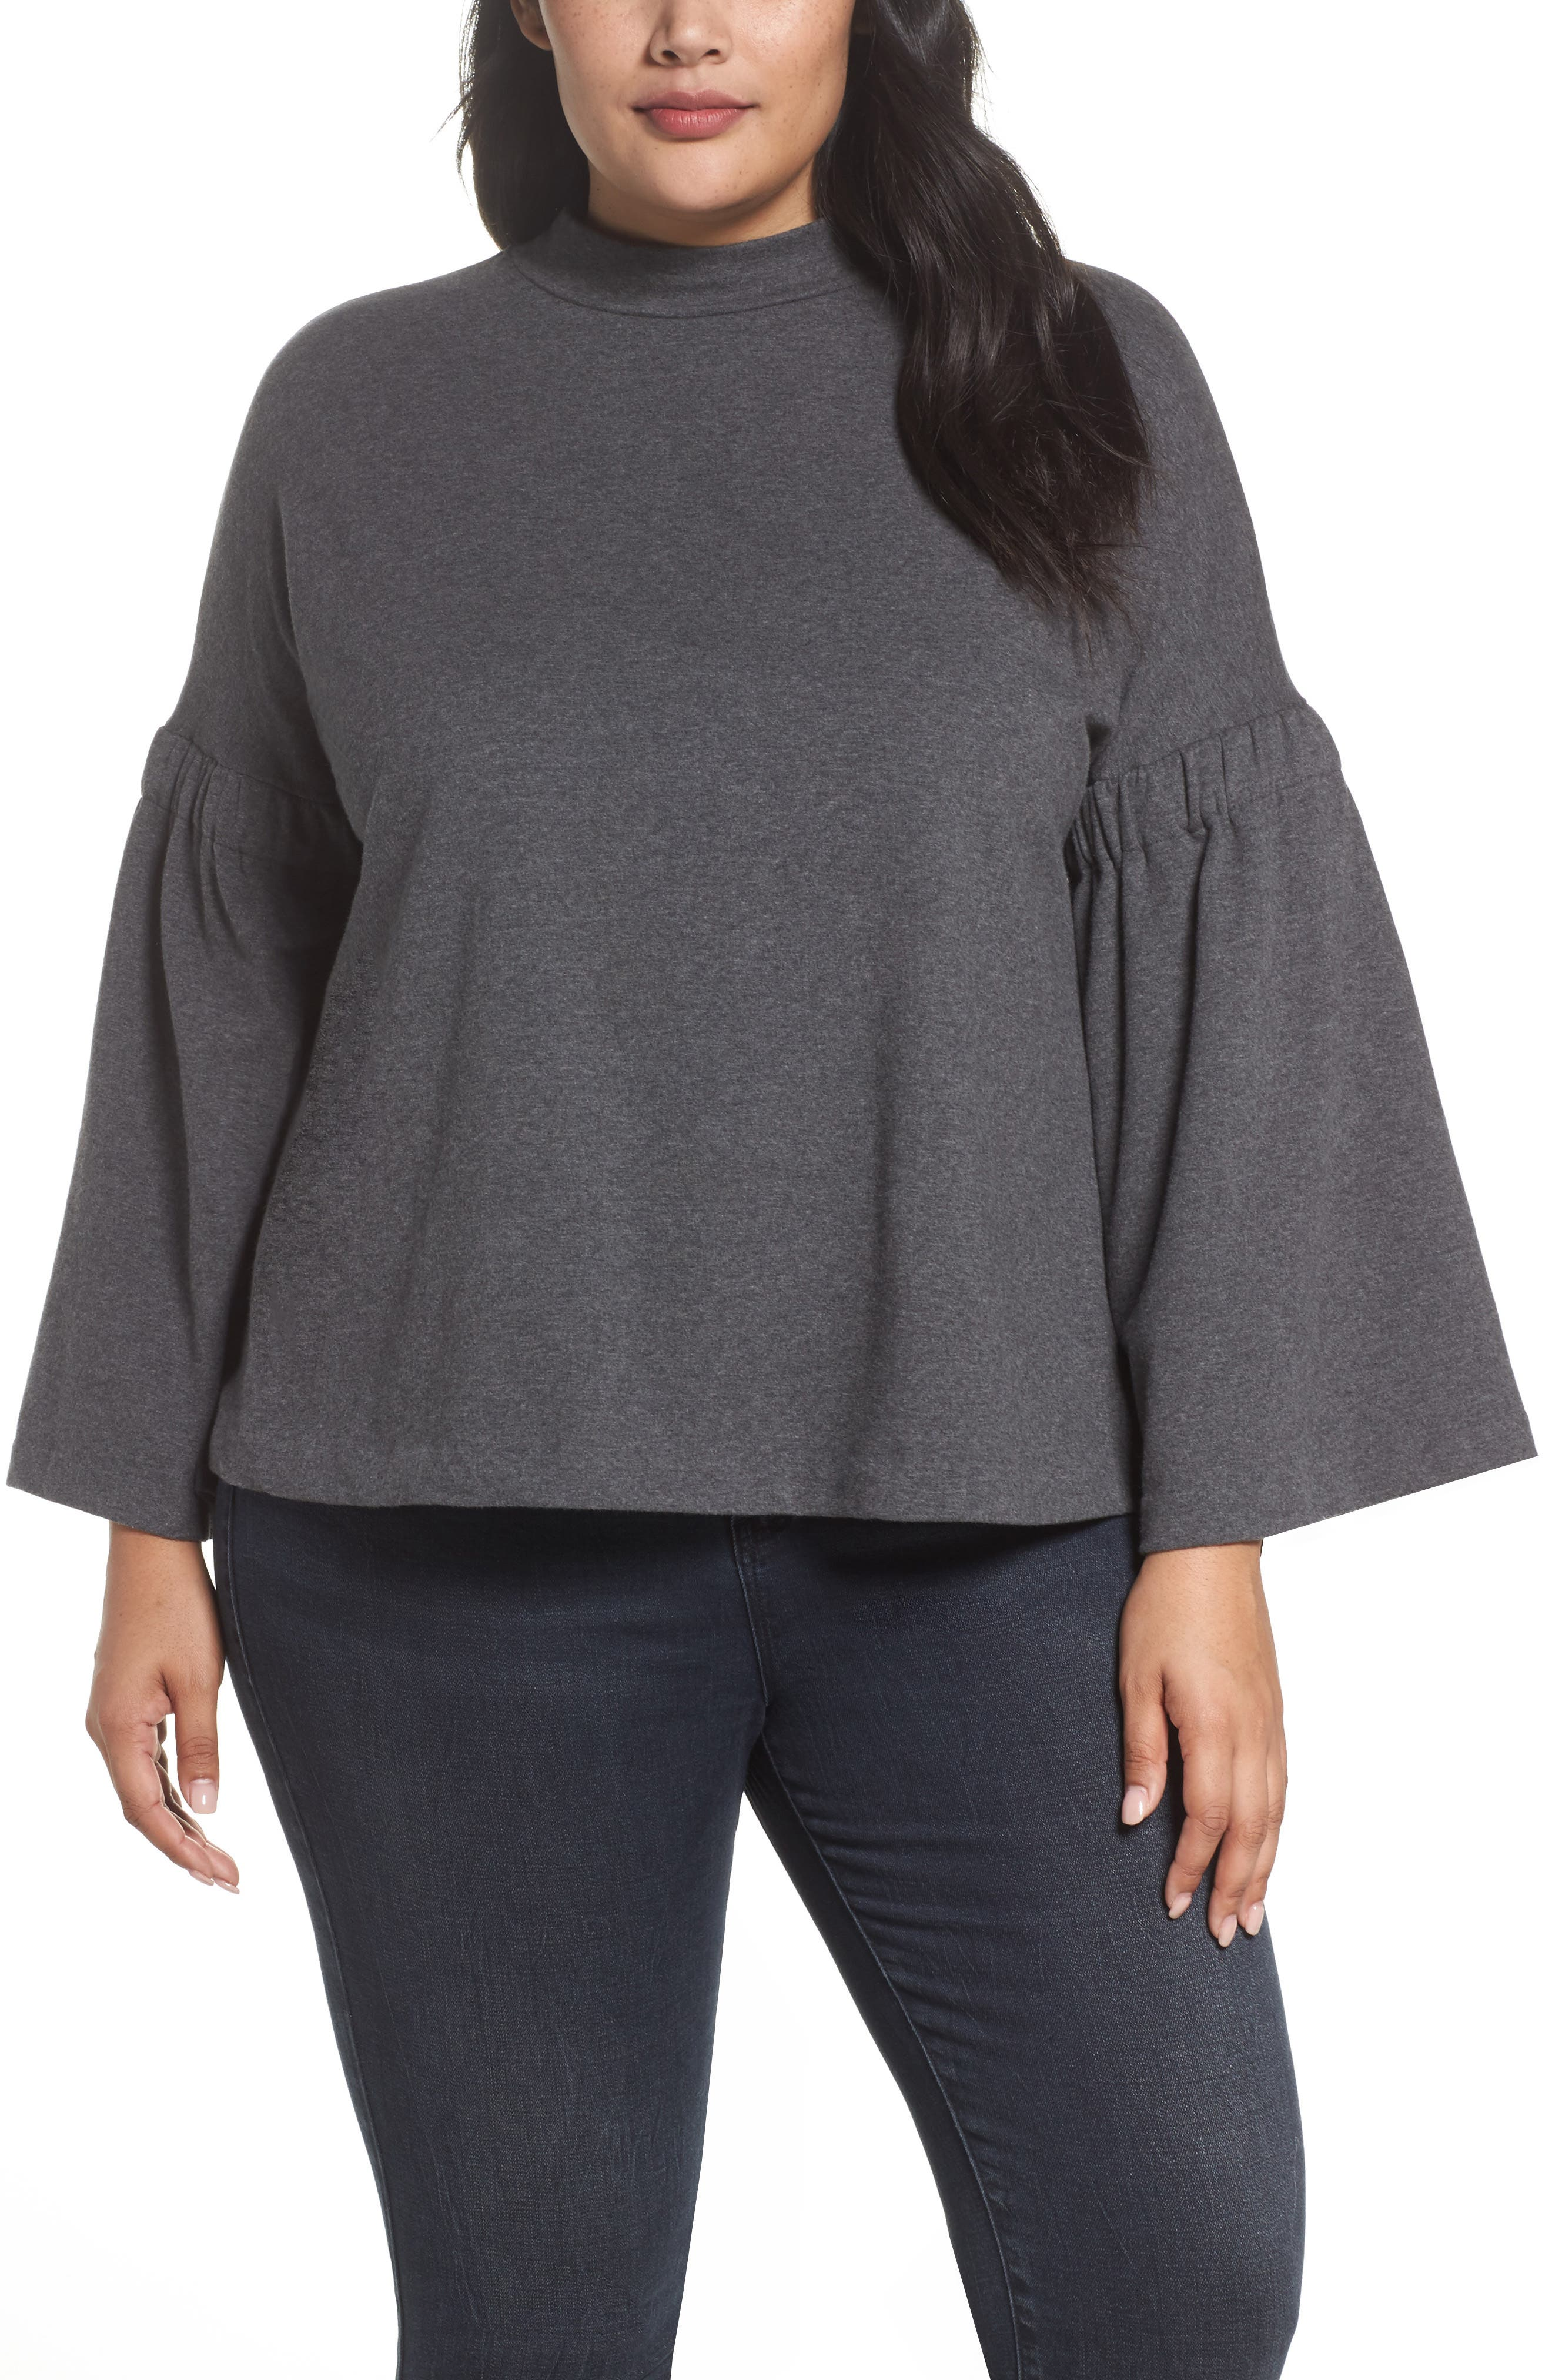 Bell Sleeve Top,                             Main thumbnail 1, color,                             MED HEATHER GREY